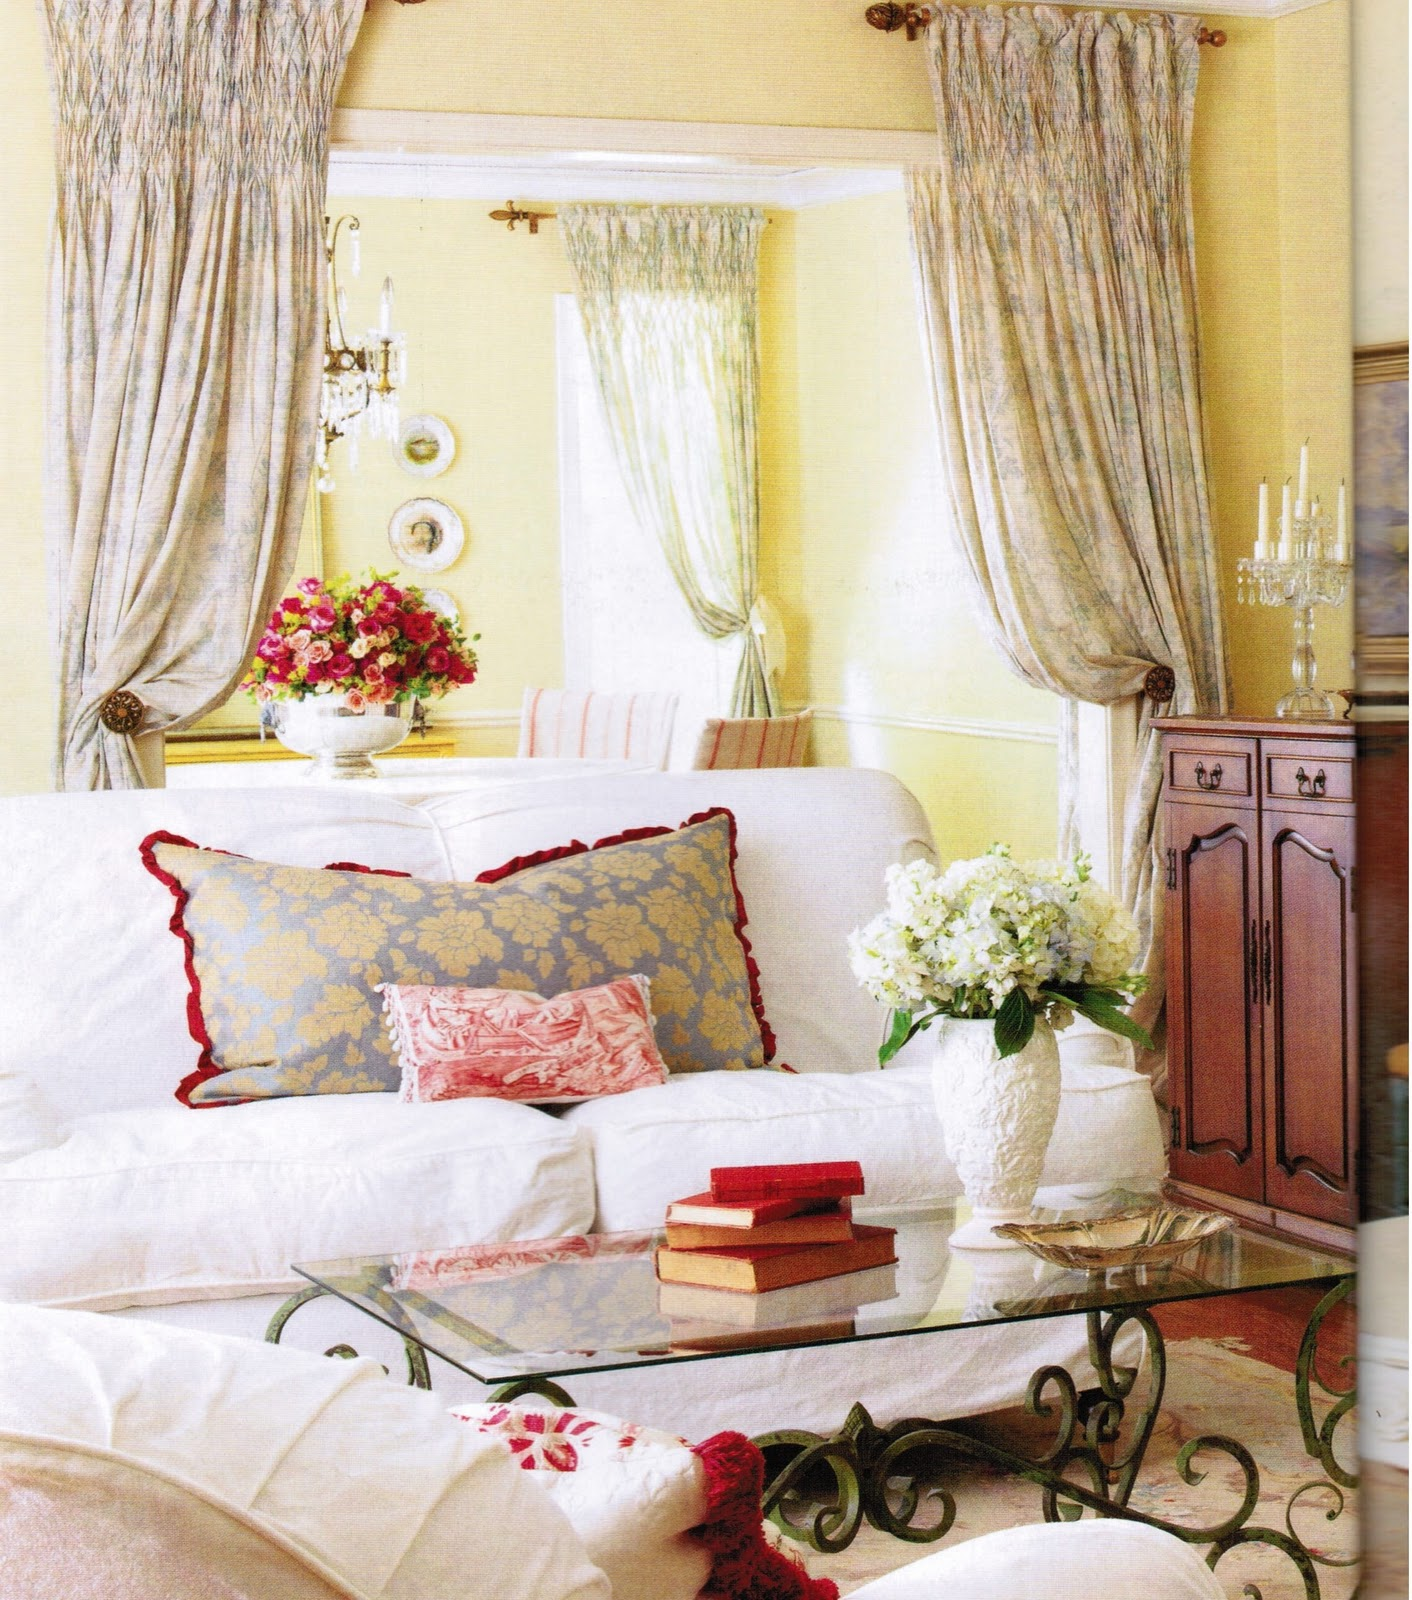 Country Living Room Decorating: Maison Decor: French Country: Enchanting Yellow & White